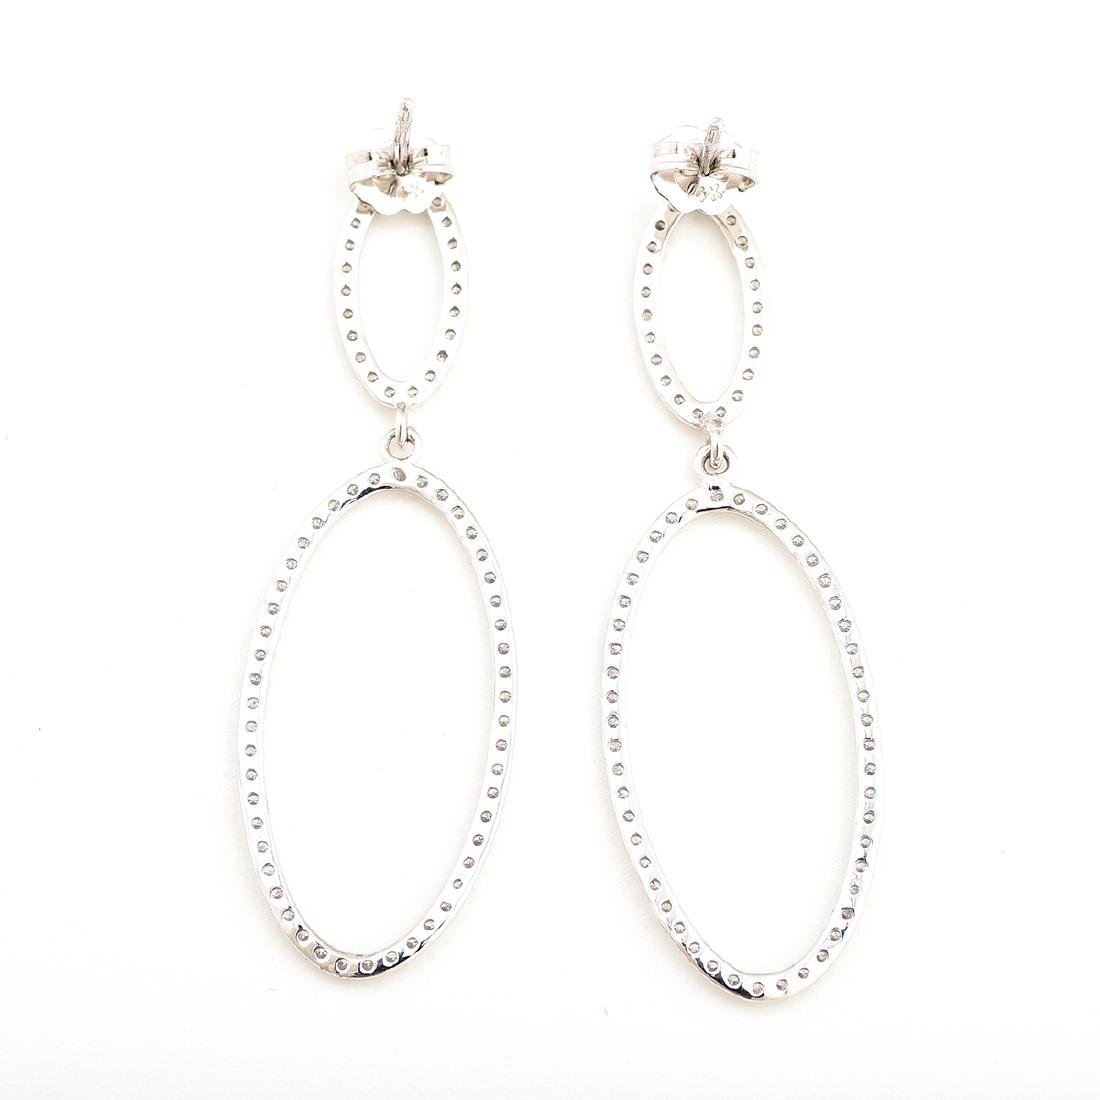 Pair of Diamond, 14k White Gold Earrings. - 4